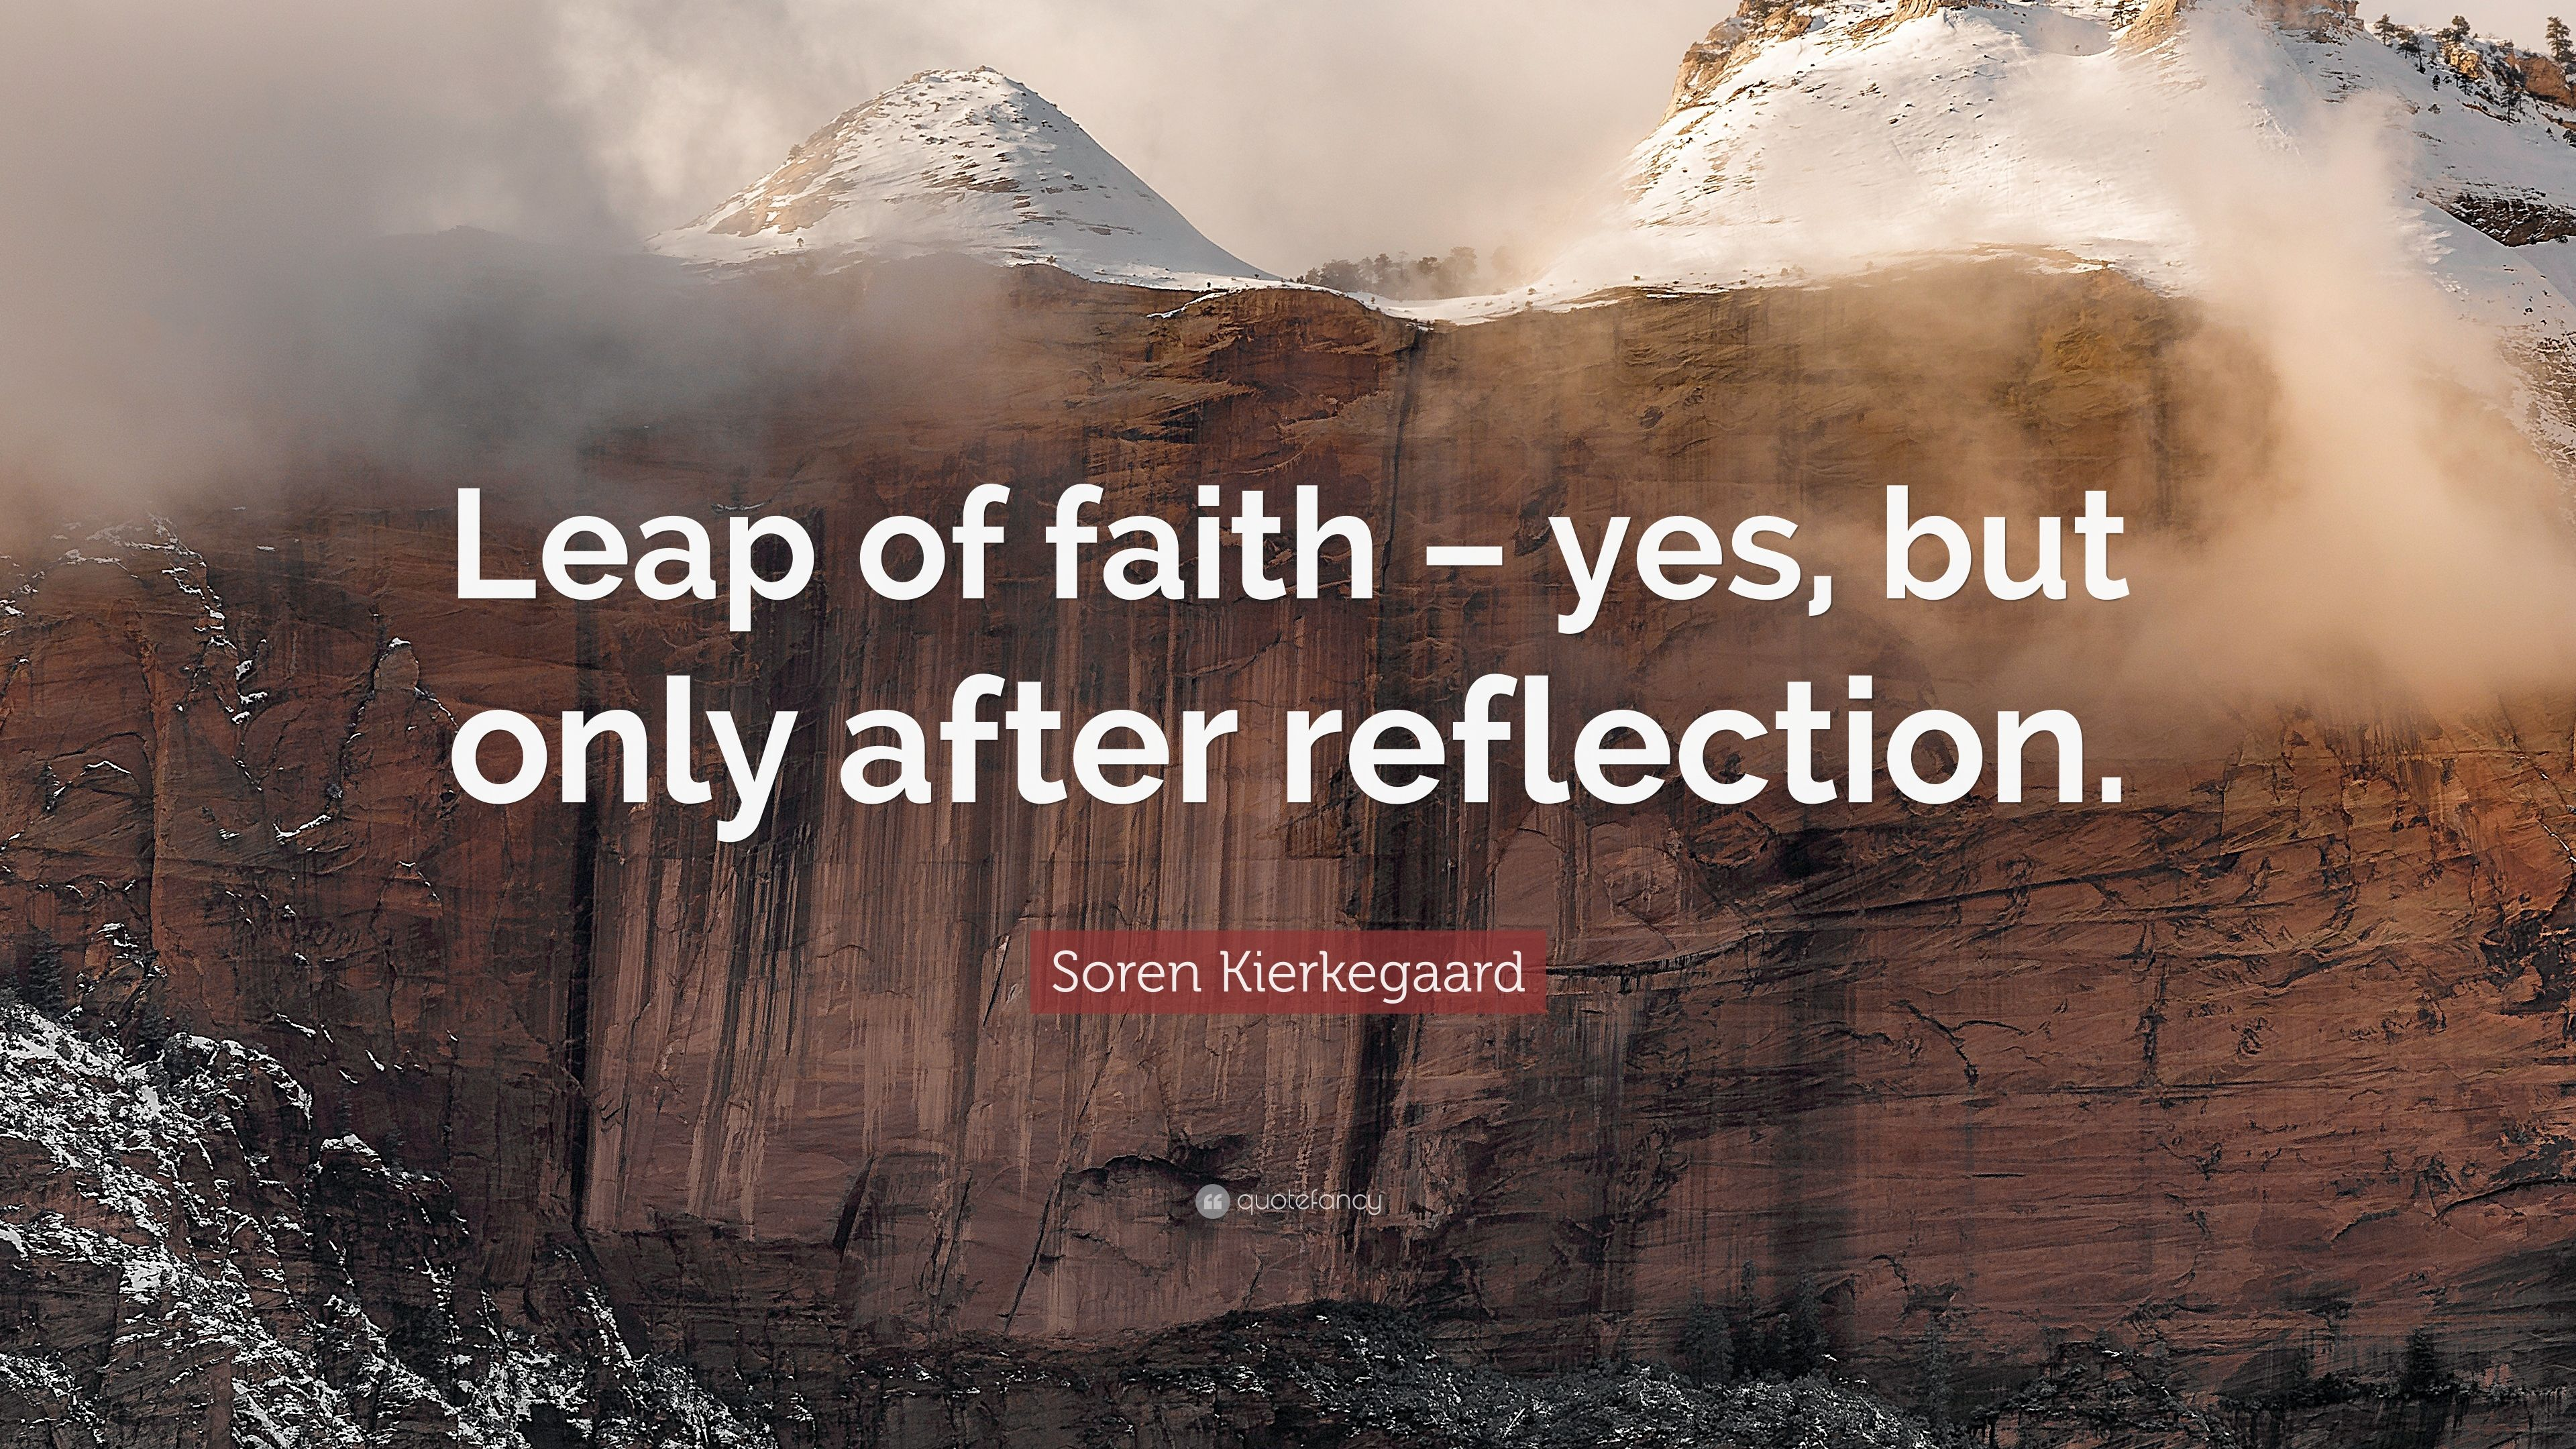 kierkegaard leap of faith An excerpt from kierkegaard's work 'concluding unscientific postscript' that looks at the relationship between faith and reason, or, as kierkegaard puts it, between passion and paradox.